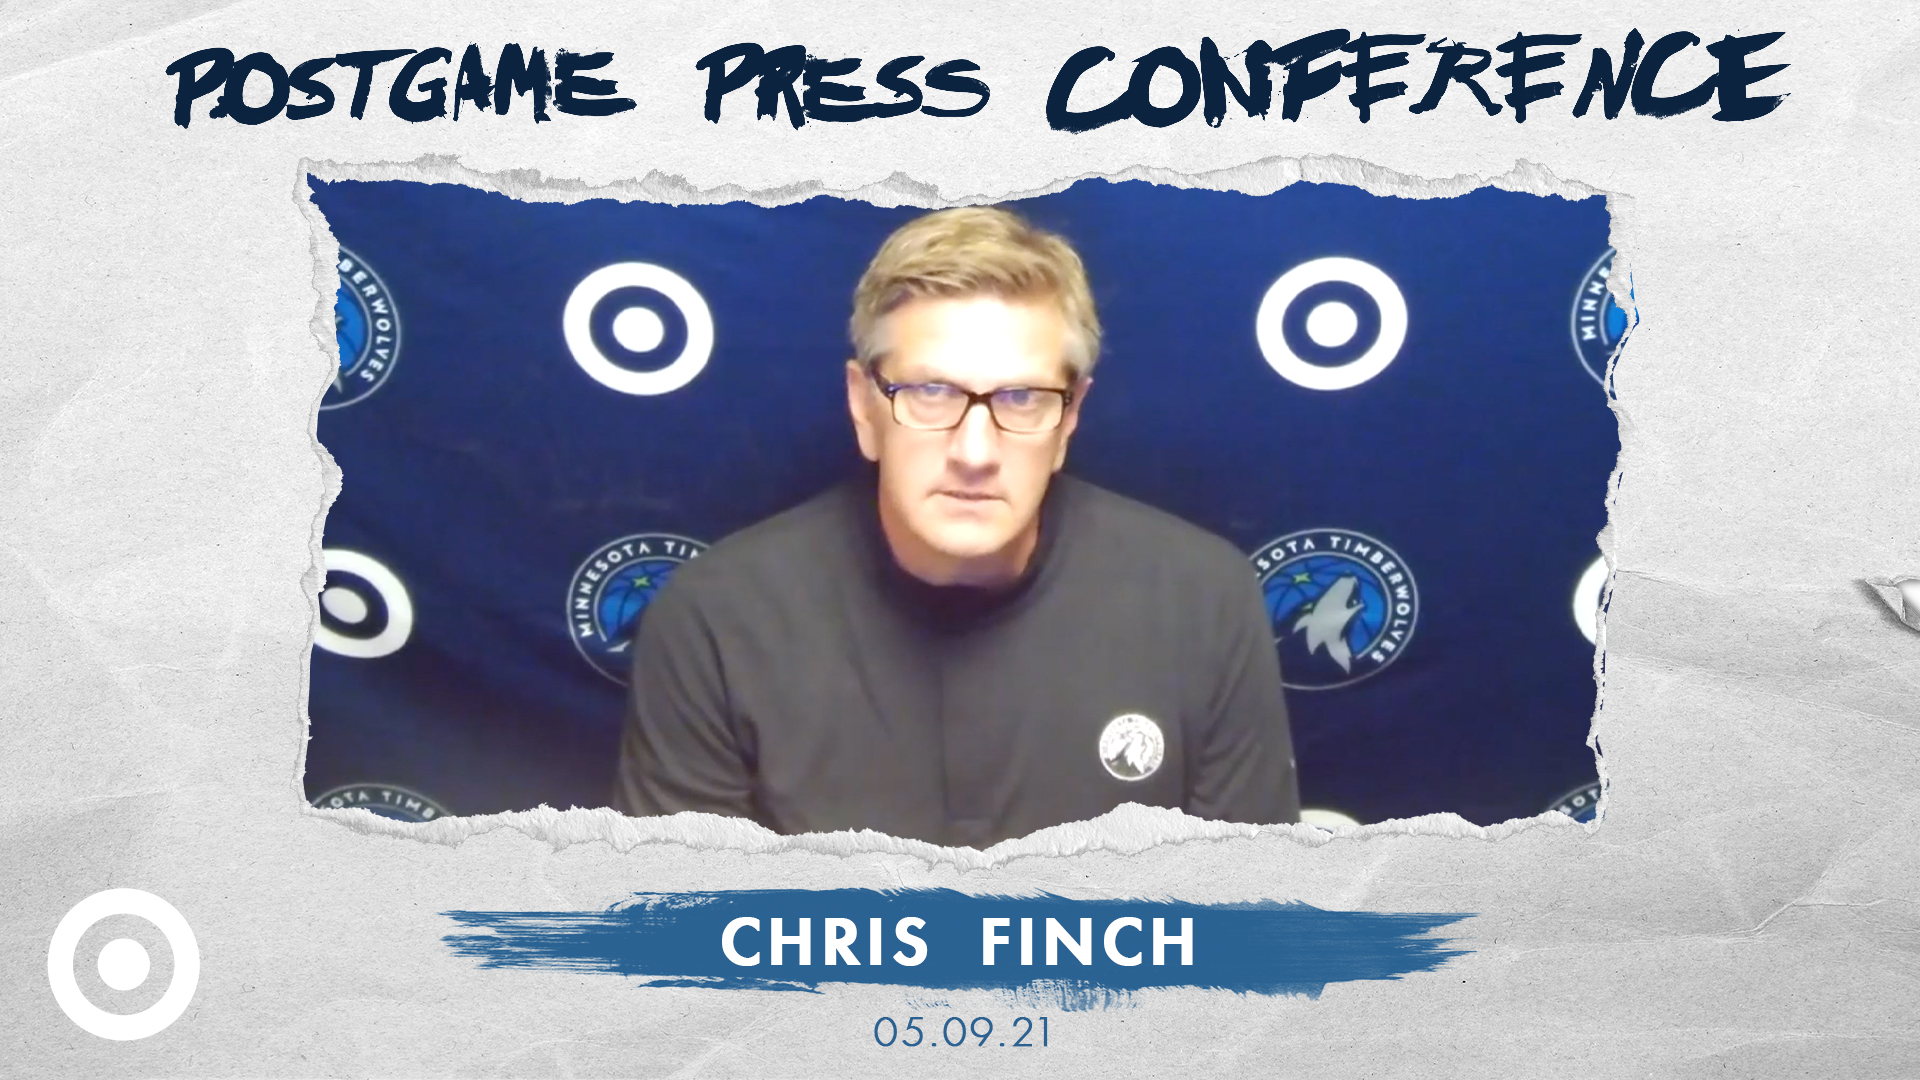 Chris Finch Postgame Press Conference - May 9, 2021